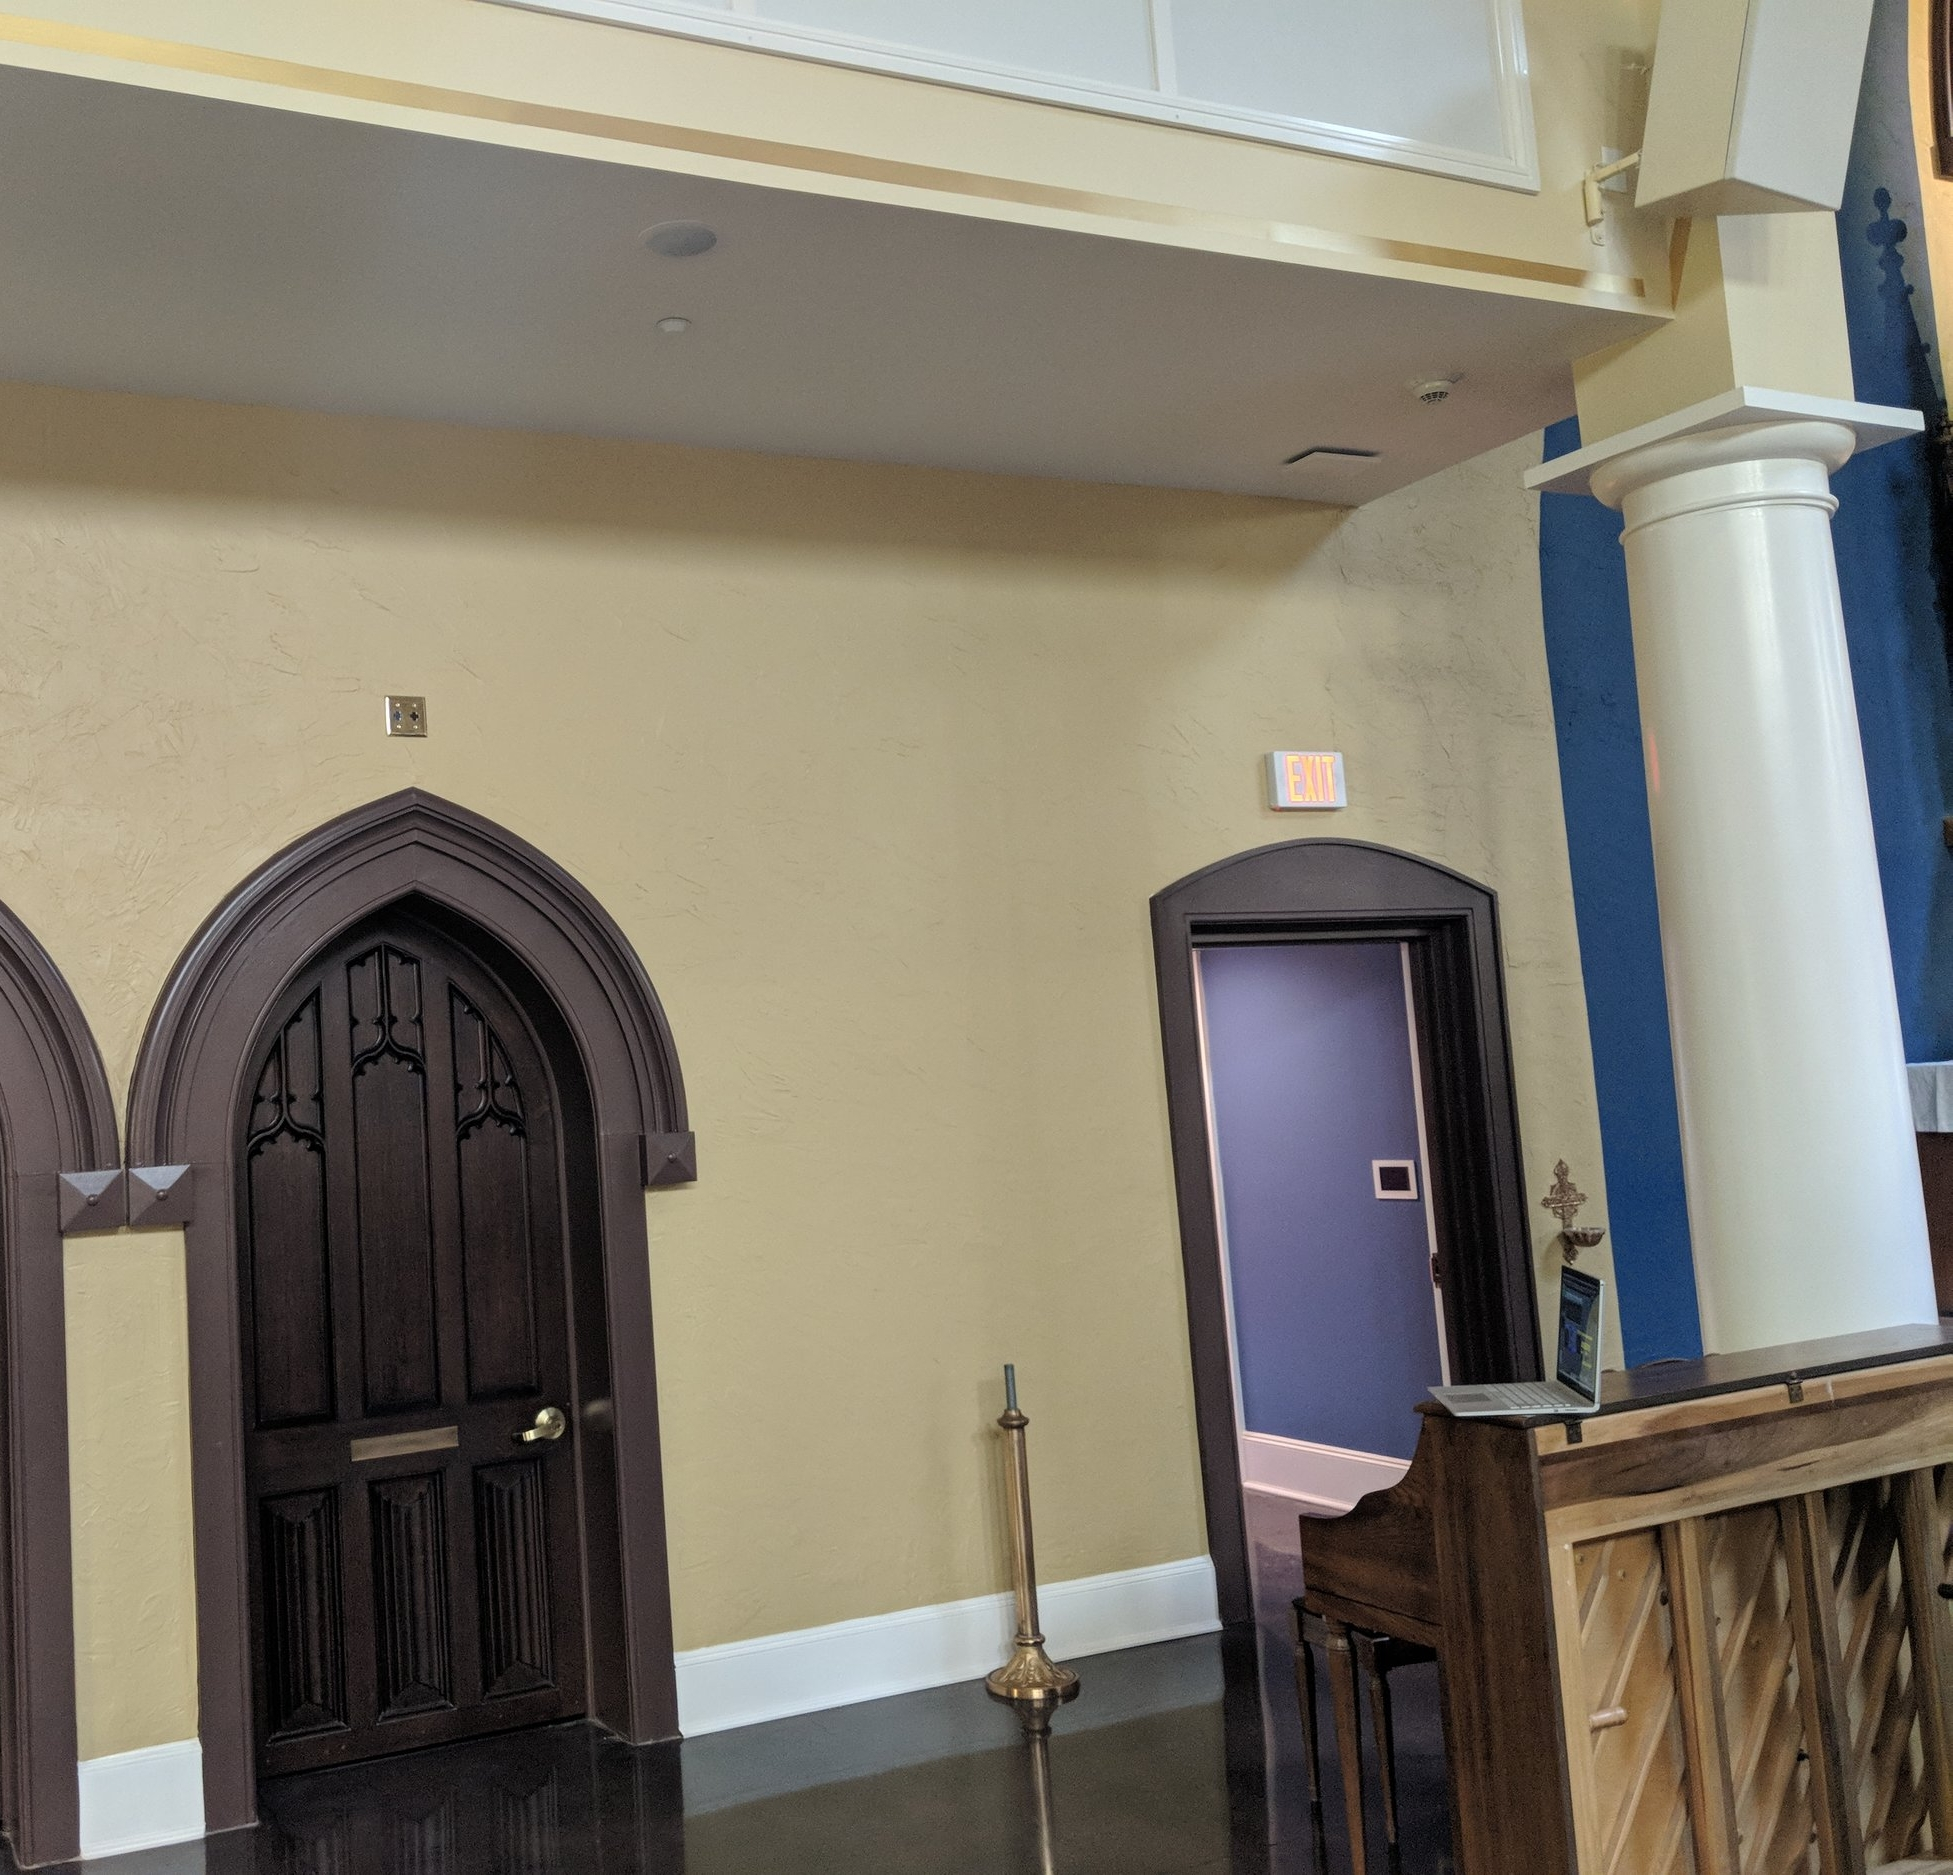 DT-1 ceiling speakers provide audio coverage to the choir members/musicians.